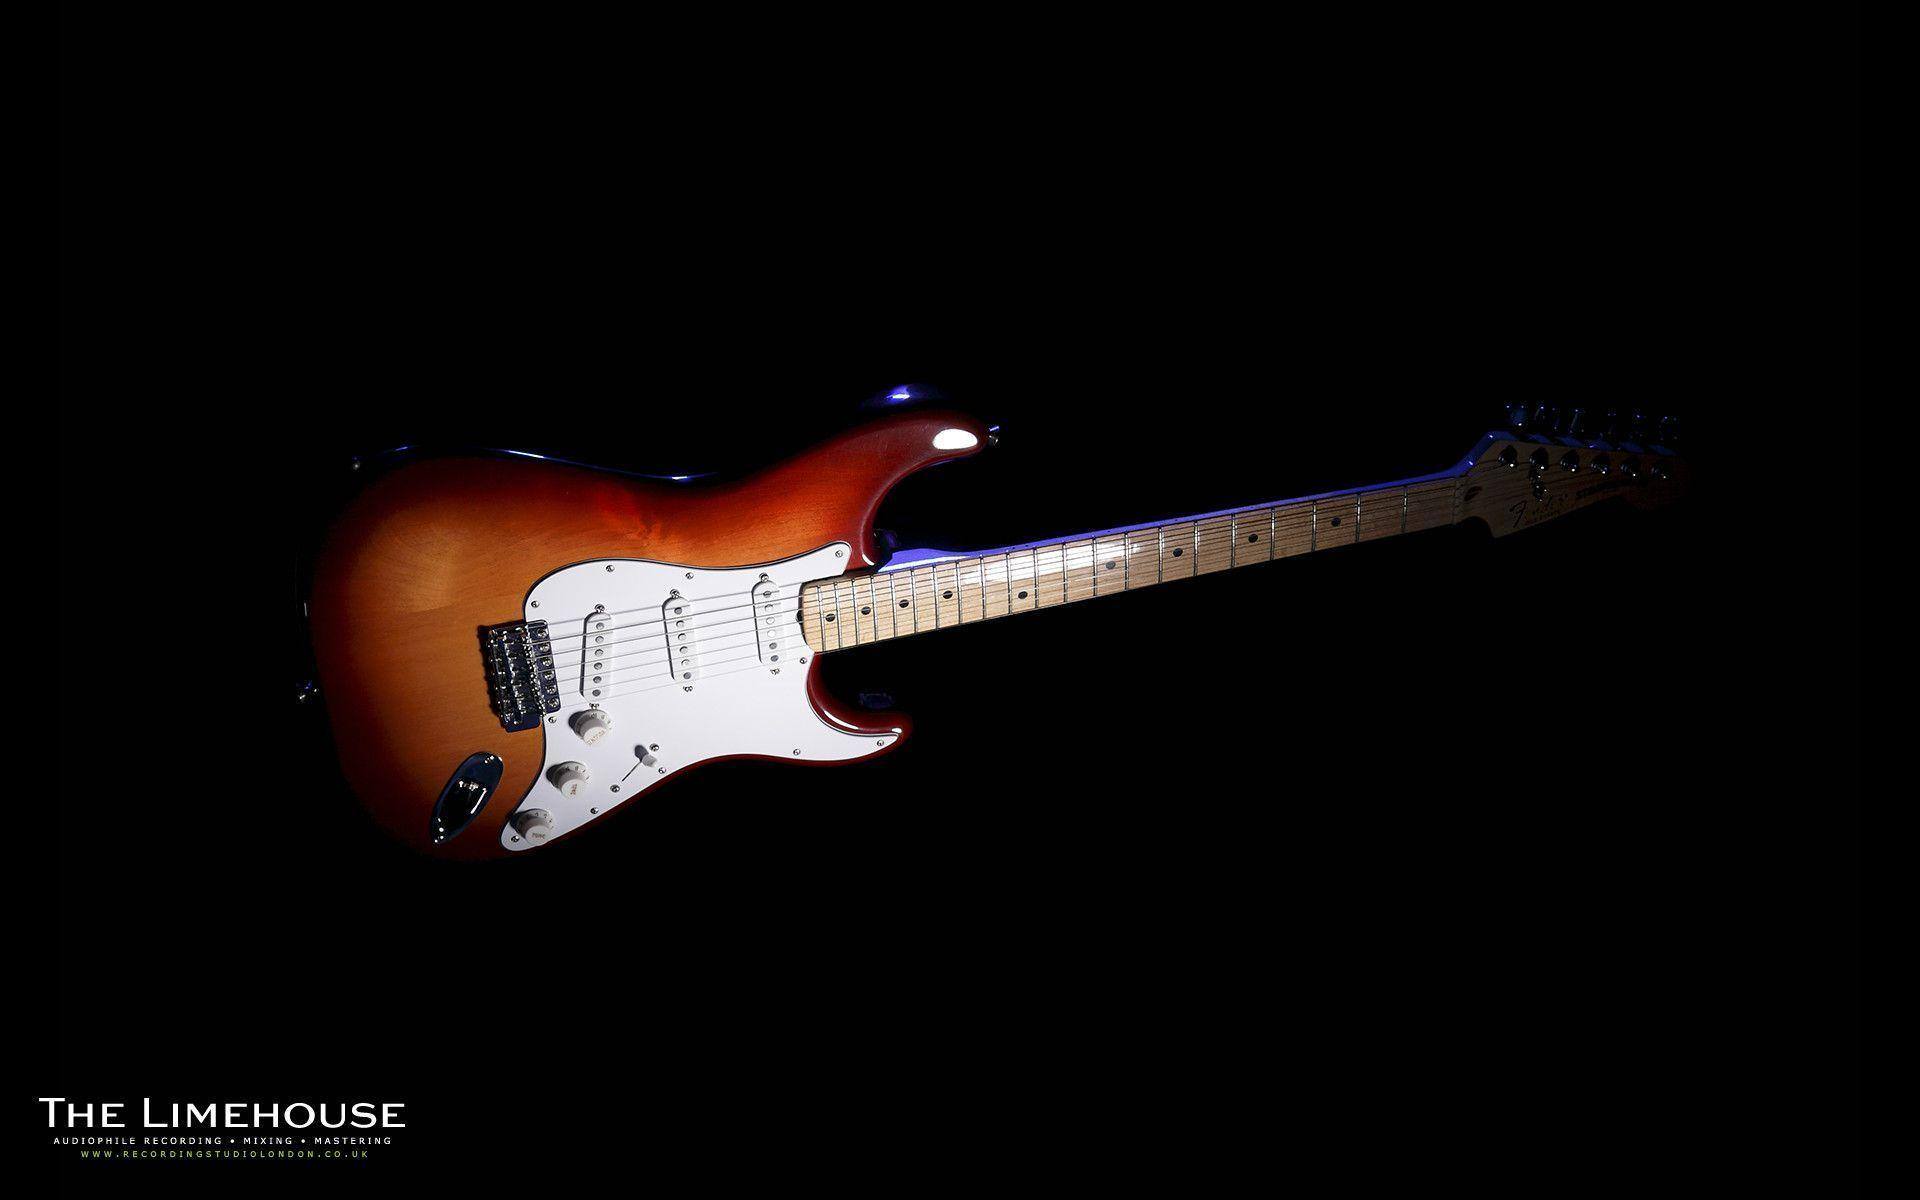 Fender Stratocaster Wallpapers 1920x1200